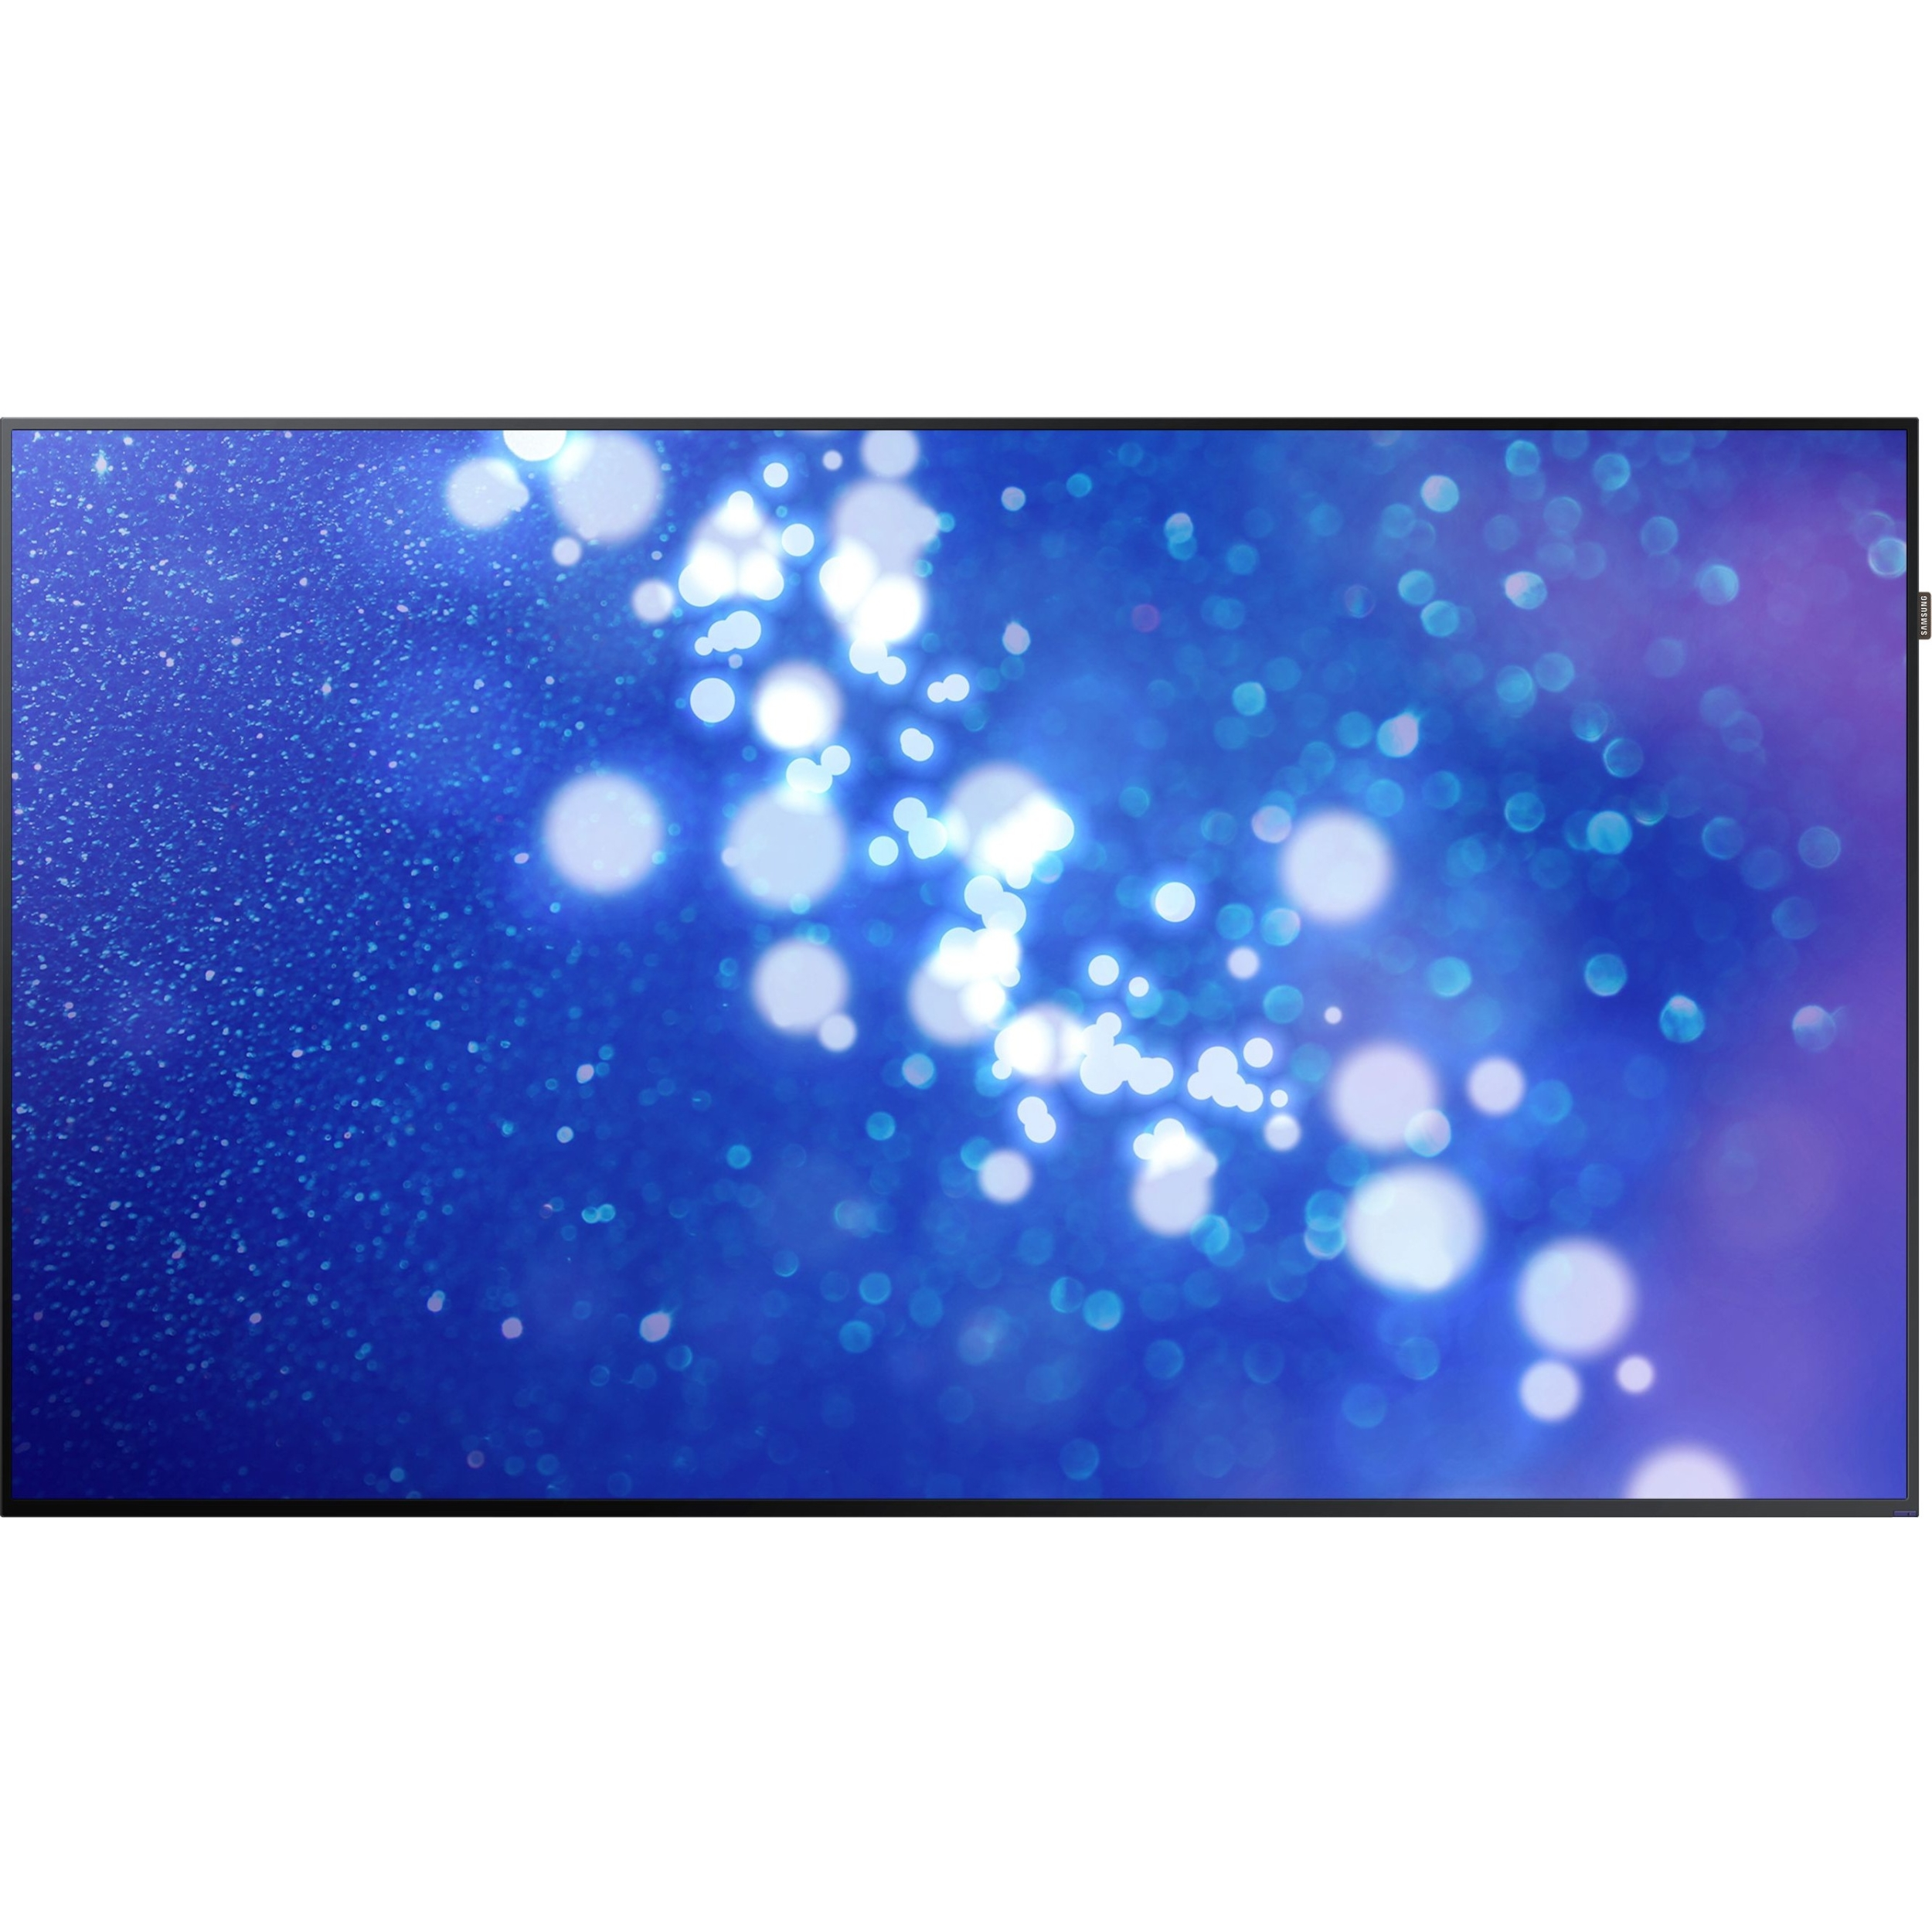 75IN COMMERCIAL LED LCD DISPLAY OPEN BOX B-STOCK SKU NO RETURNS